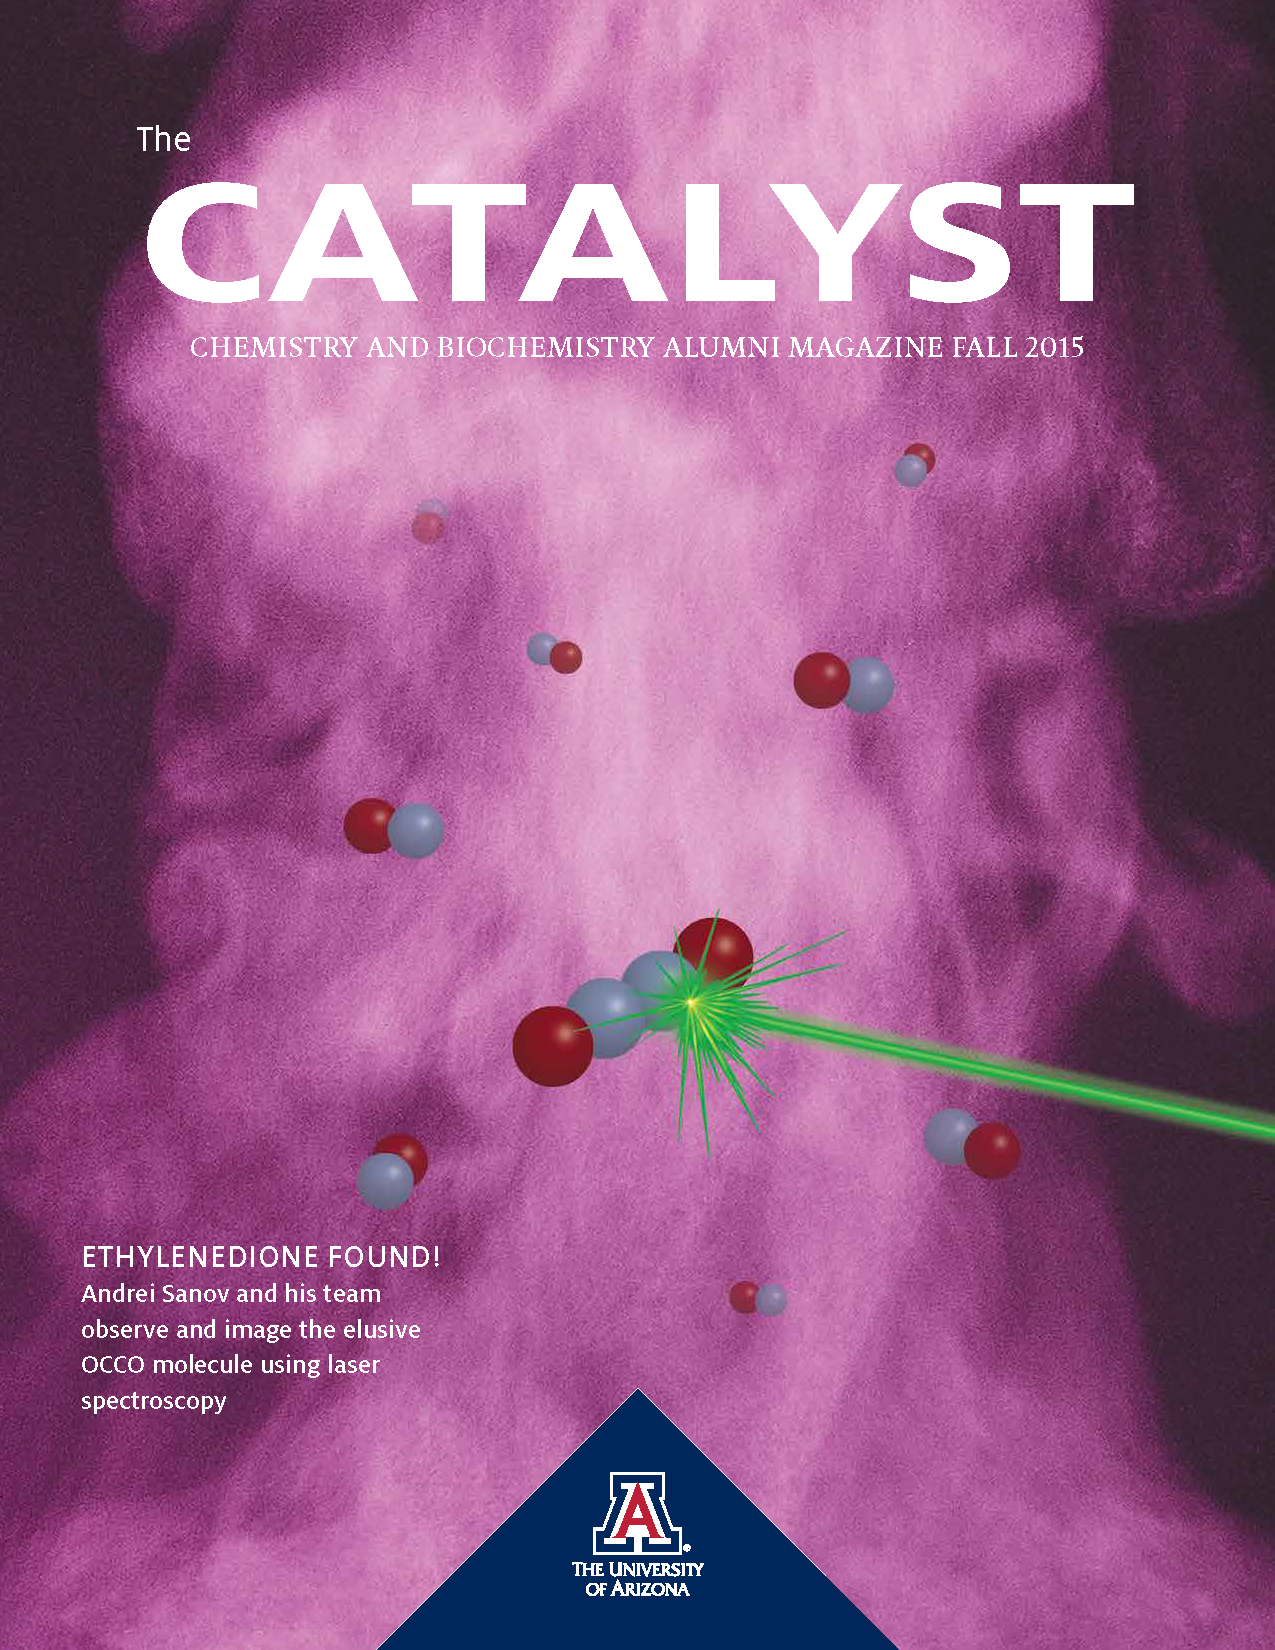 Fall 2015 Catalyst magazine cover